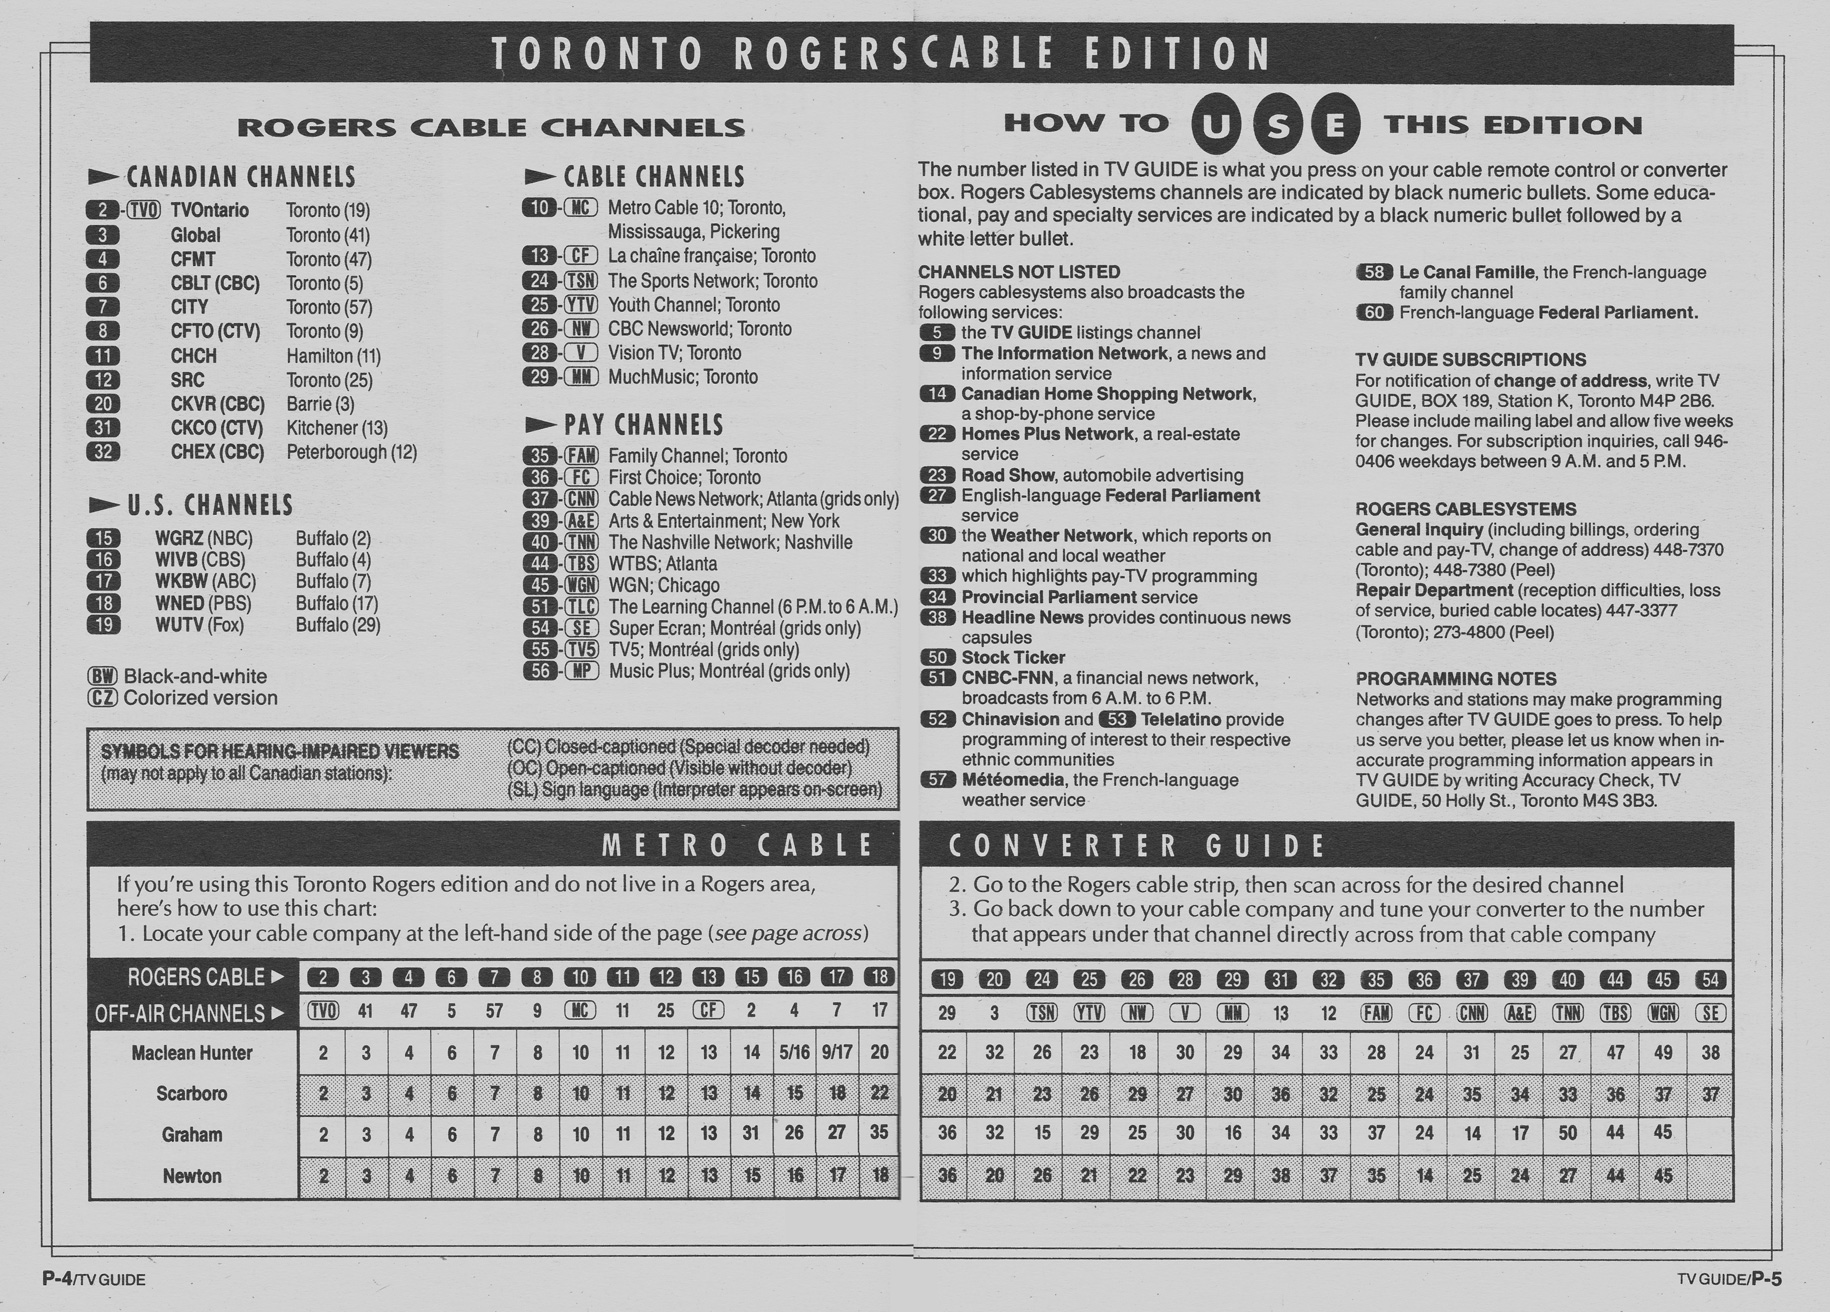 Vintage channel guide from calgary shaw cable edition of tv guide.